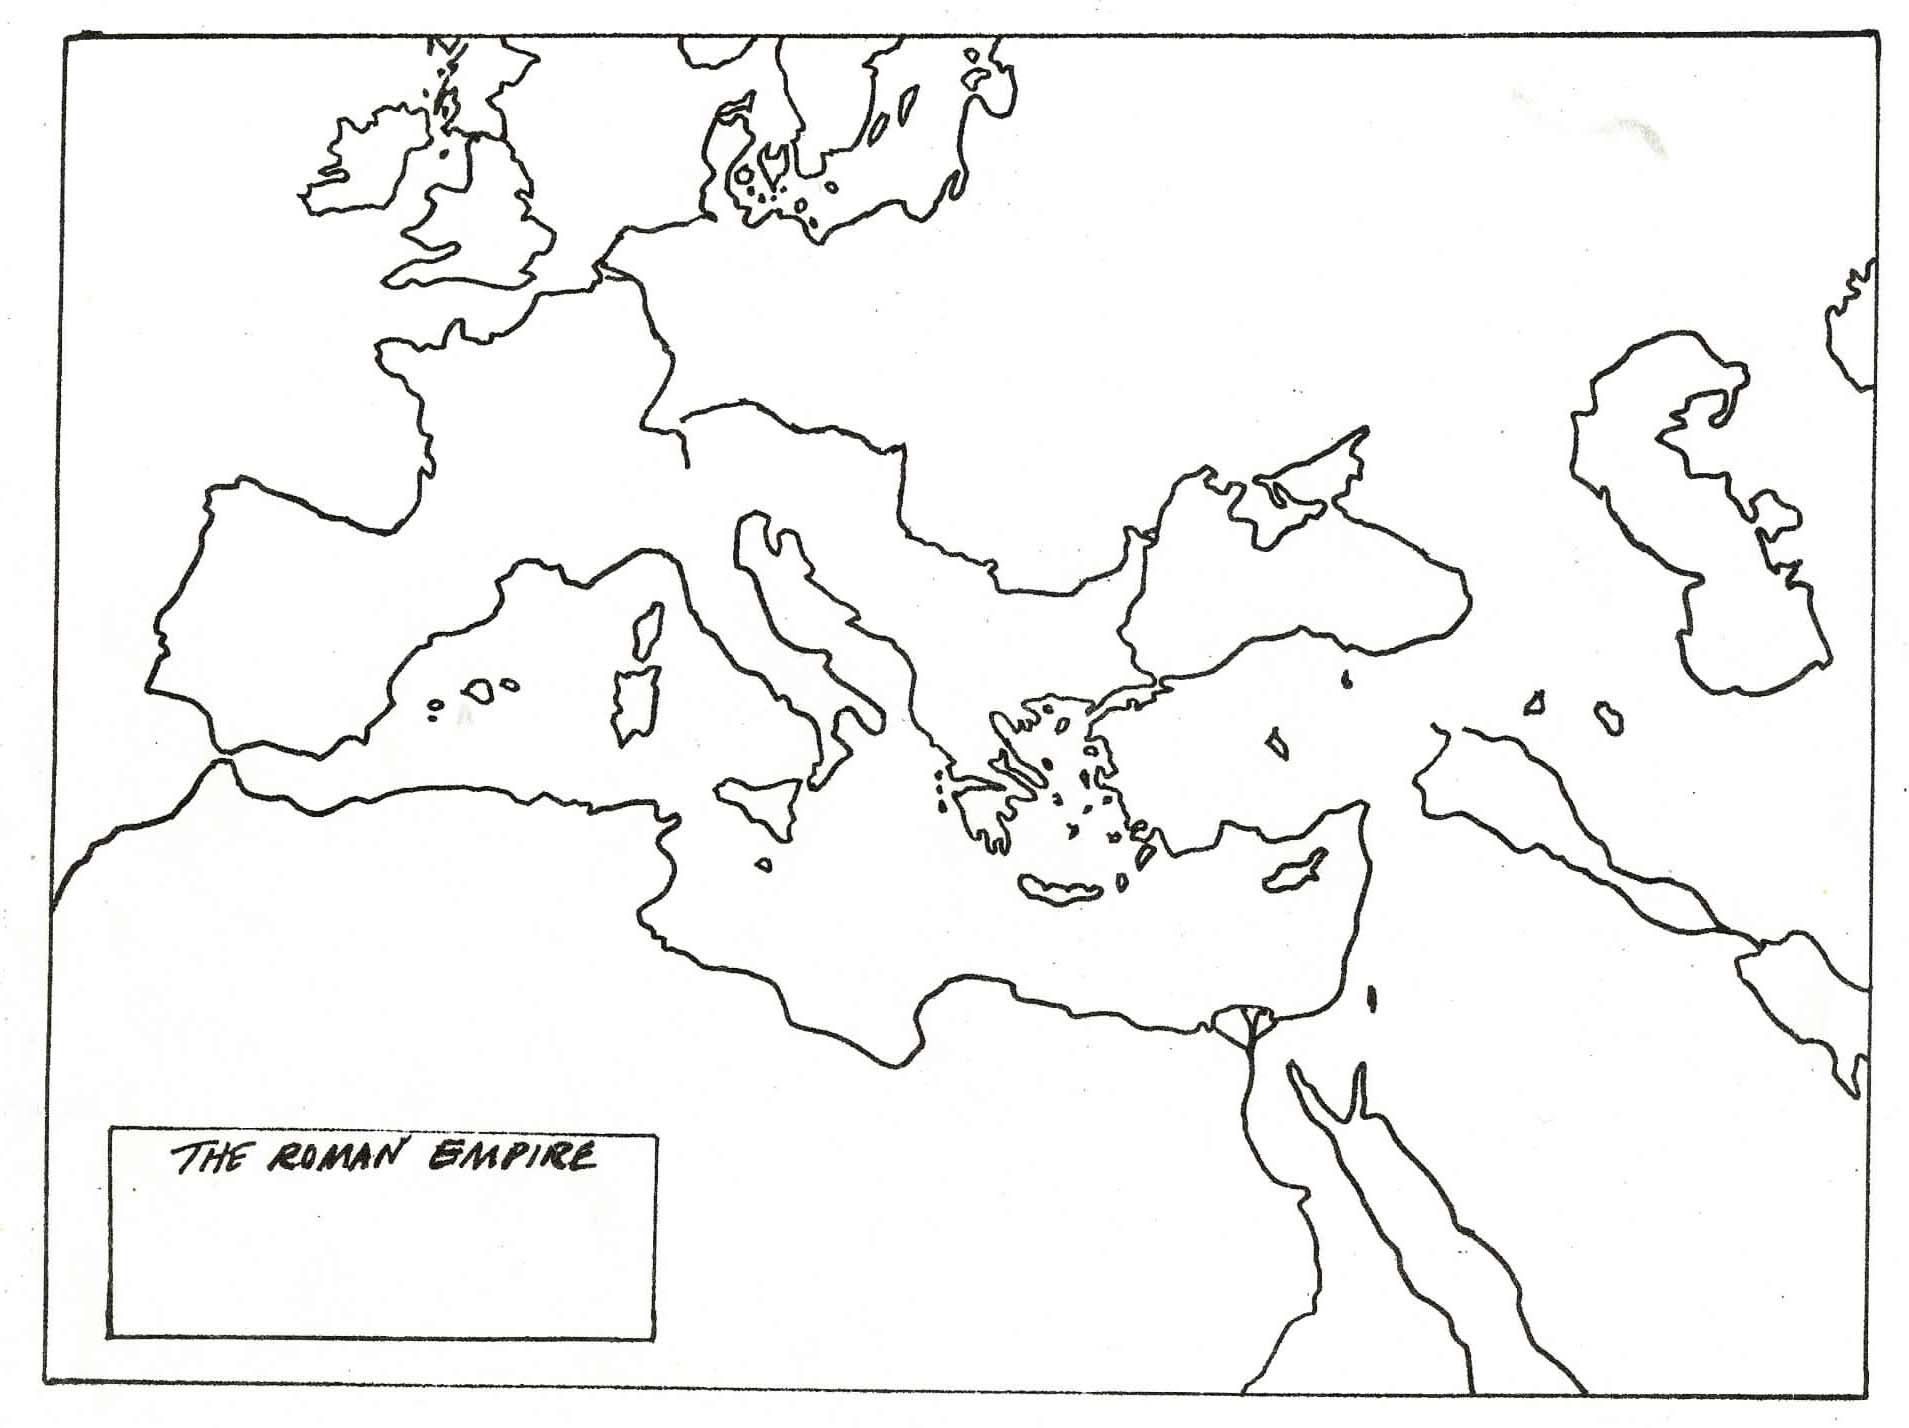 hight resolution of blank map of roman empire   Ancient rome map